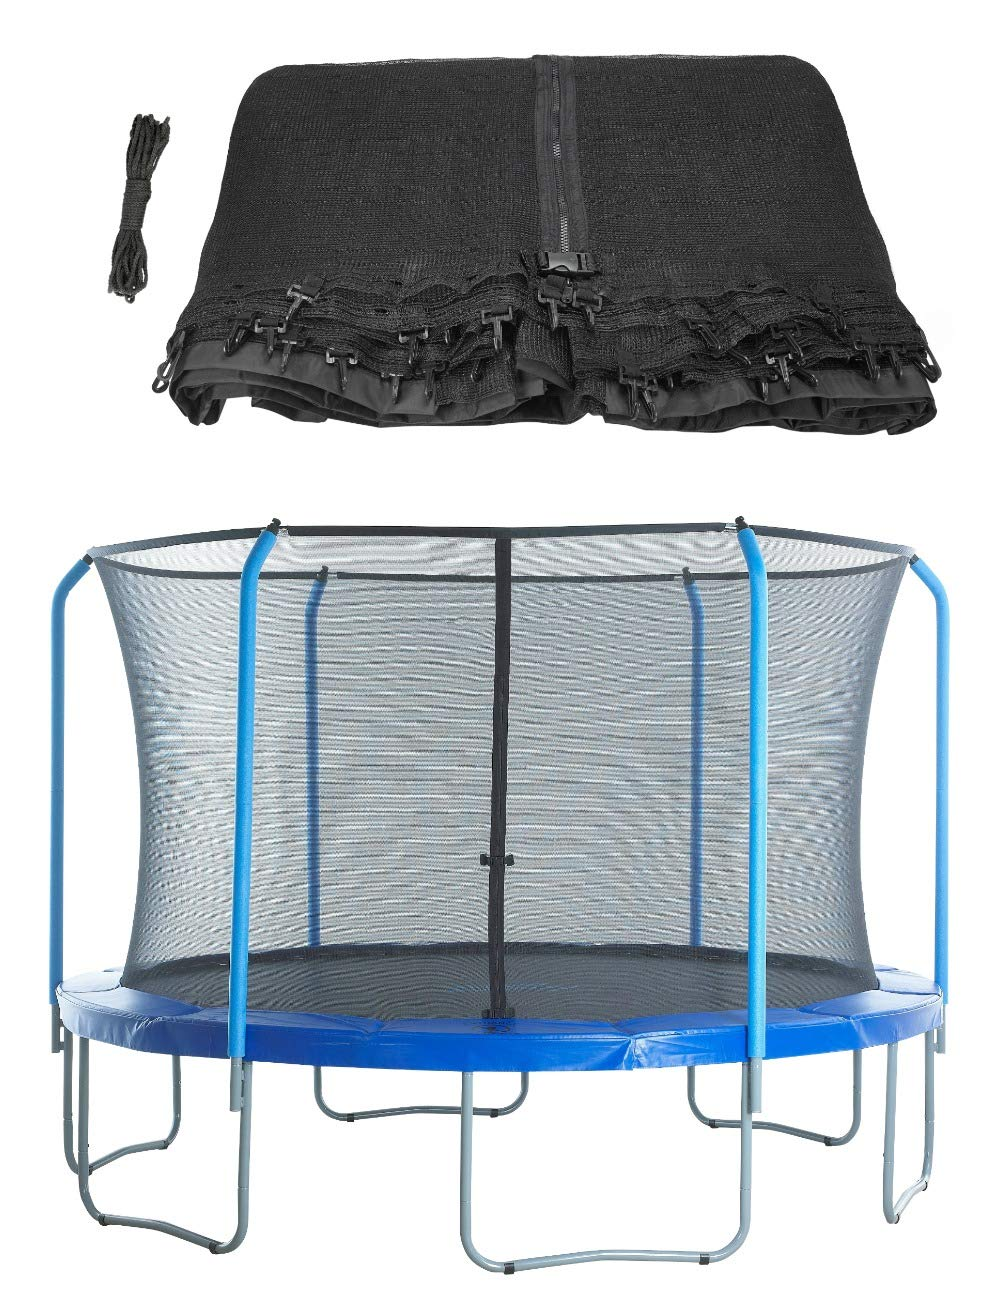 Trampoline Replacement Safety Net for Top Ring Enclosure System, By Upper Bounce -NET ONLY by Upper Bounce